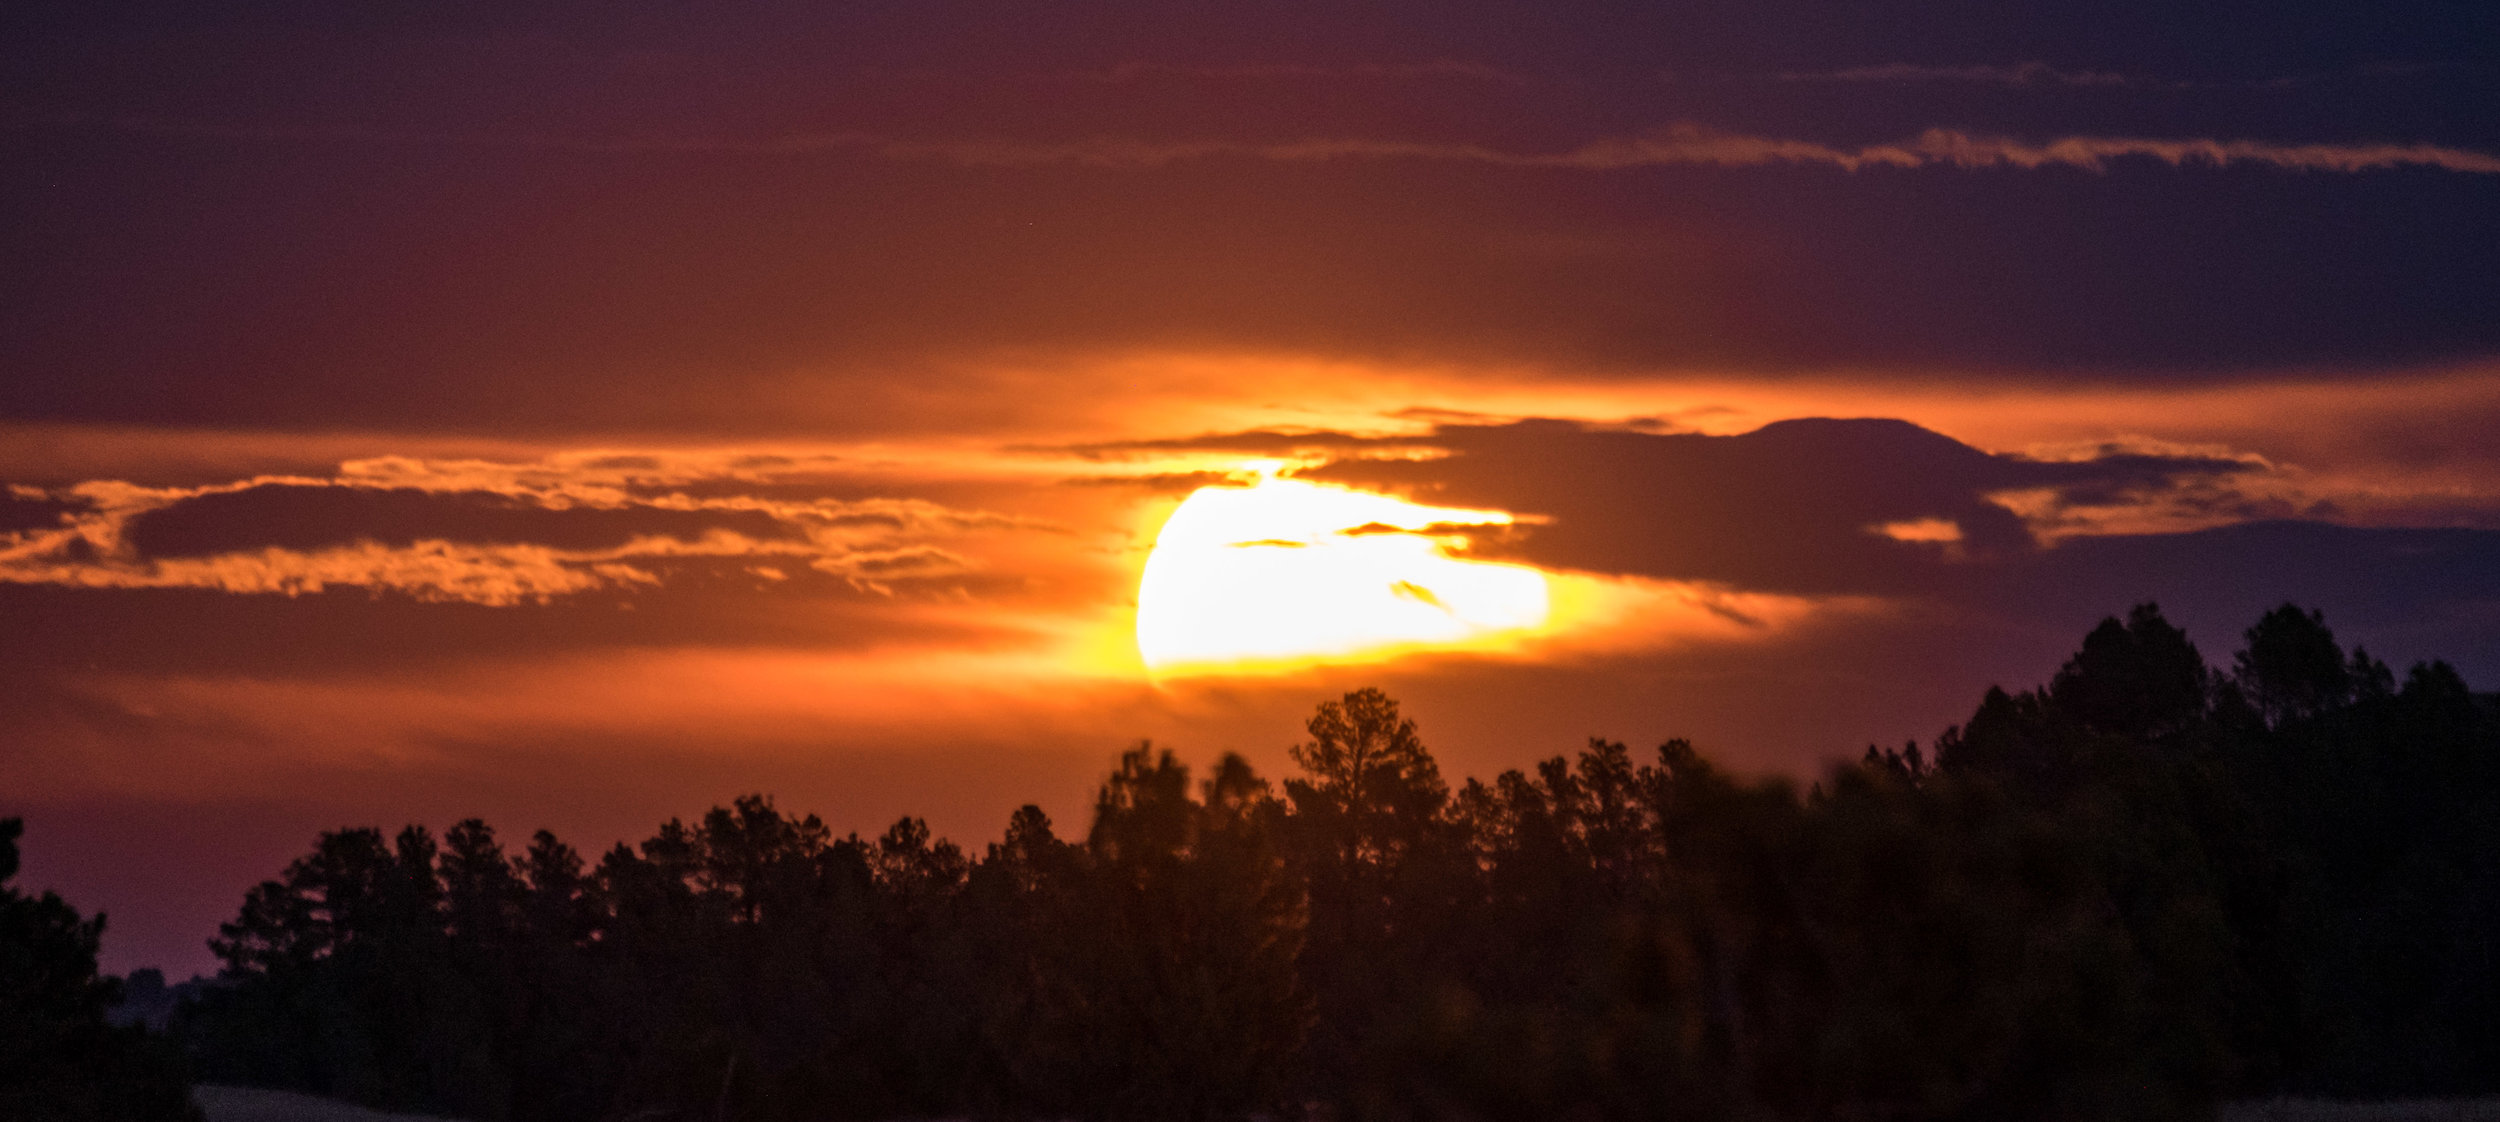 Sunset in Wind Cave National Park in South Dakota.